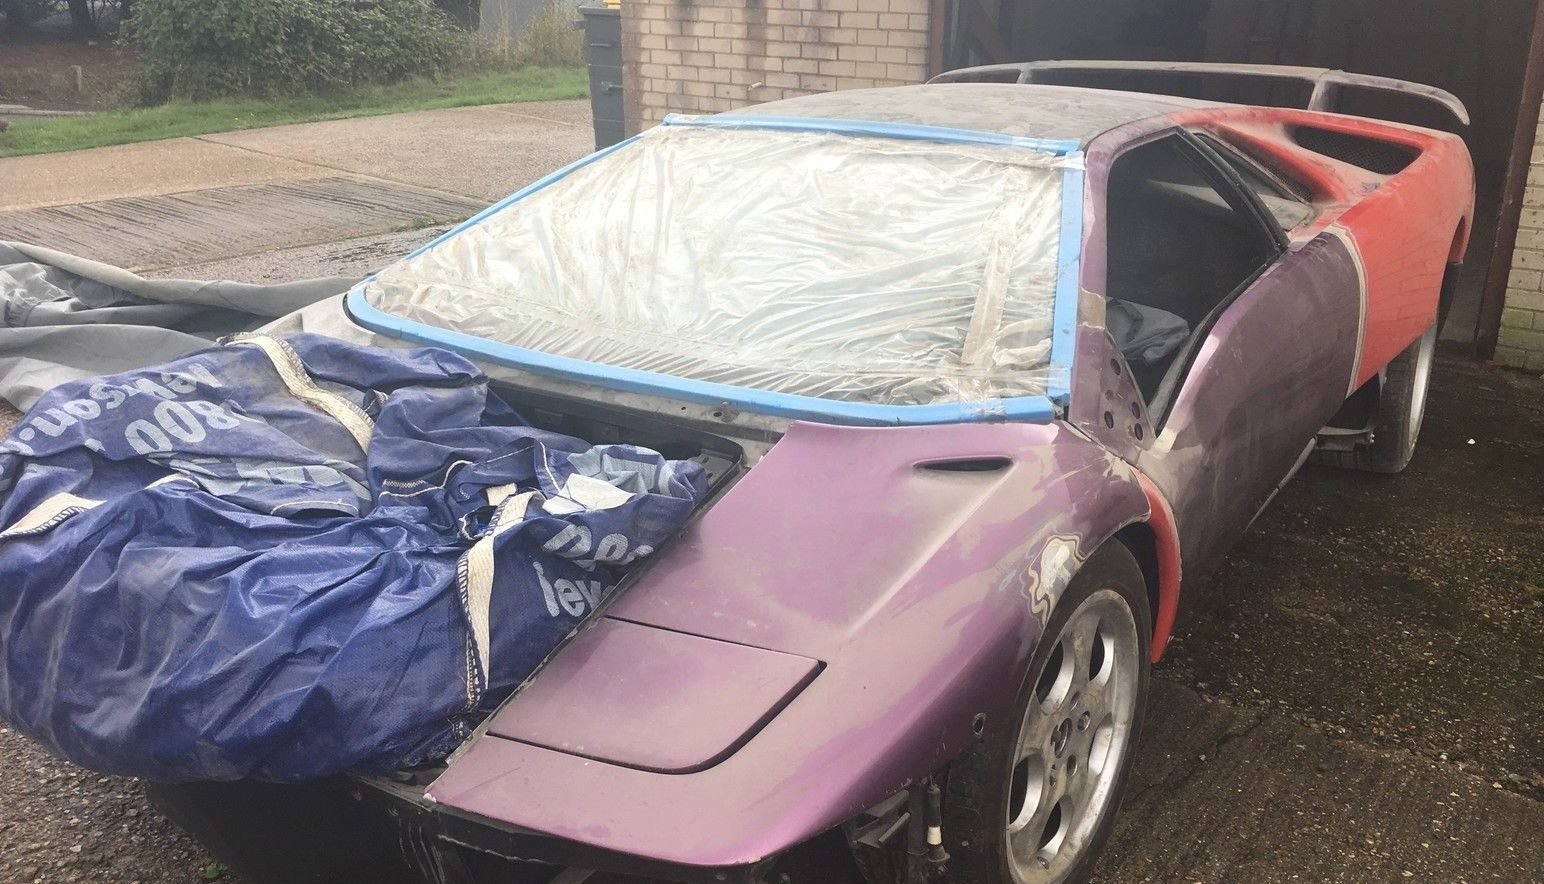 Whats Amazing About This Particular Find Is That Its Not Only A Diablo Project Car But Highly Rare SE30 Edition